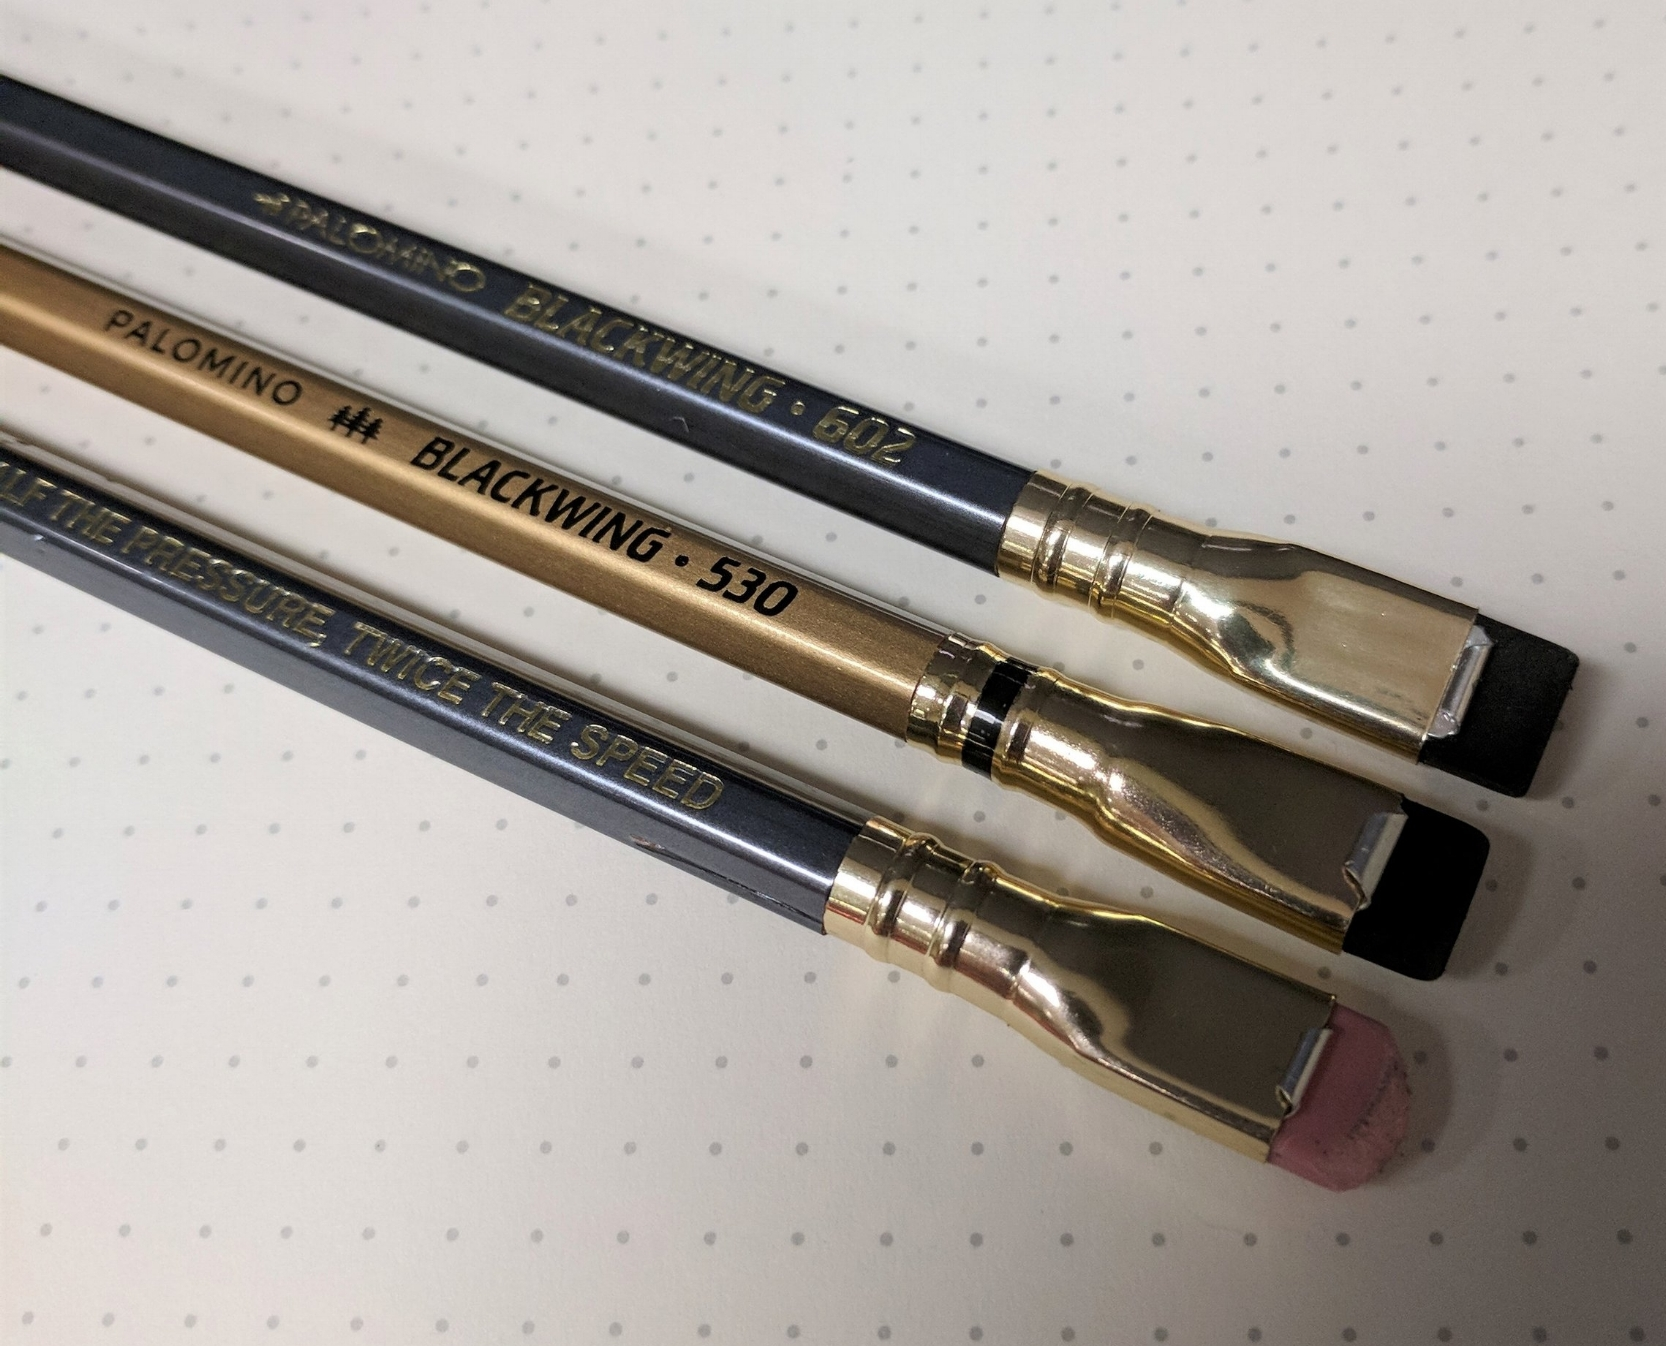 "The Blackwing 530, one of the limited Blackwing ""Volumes"", included a black stripe on the ferrule - a design element that appeared on some, but not all, vintage Blackwings. I love the look of the ferrule stripe."